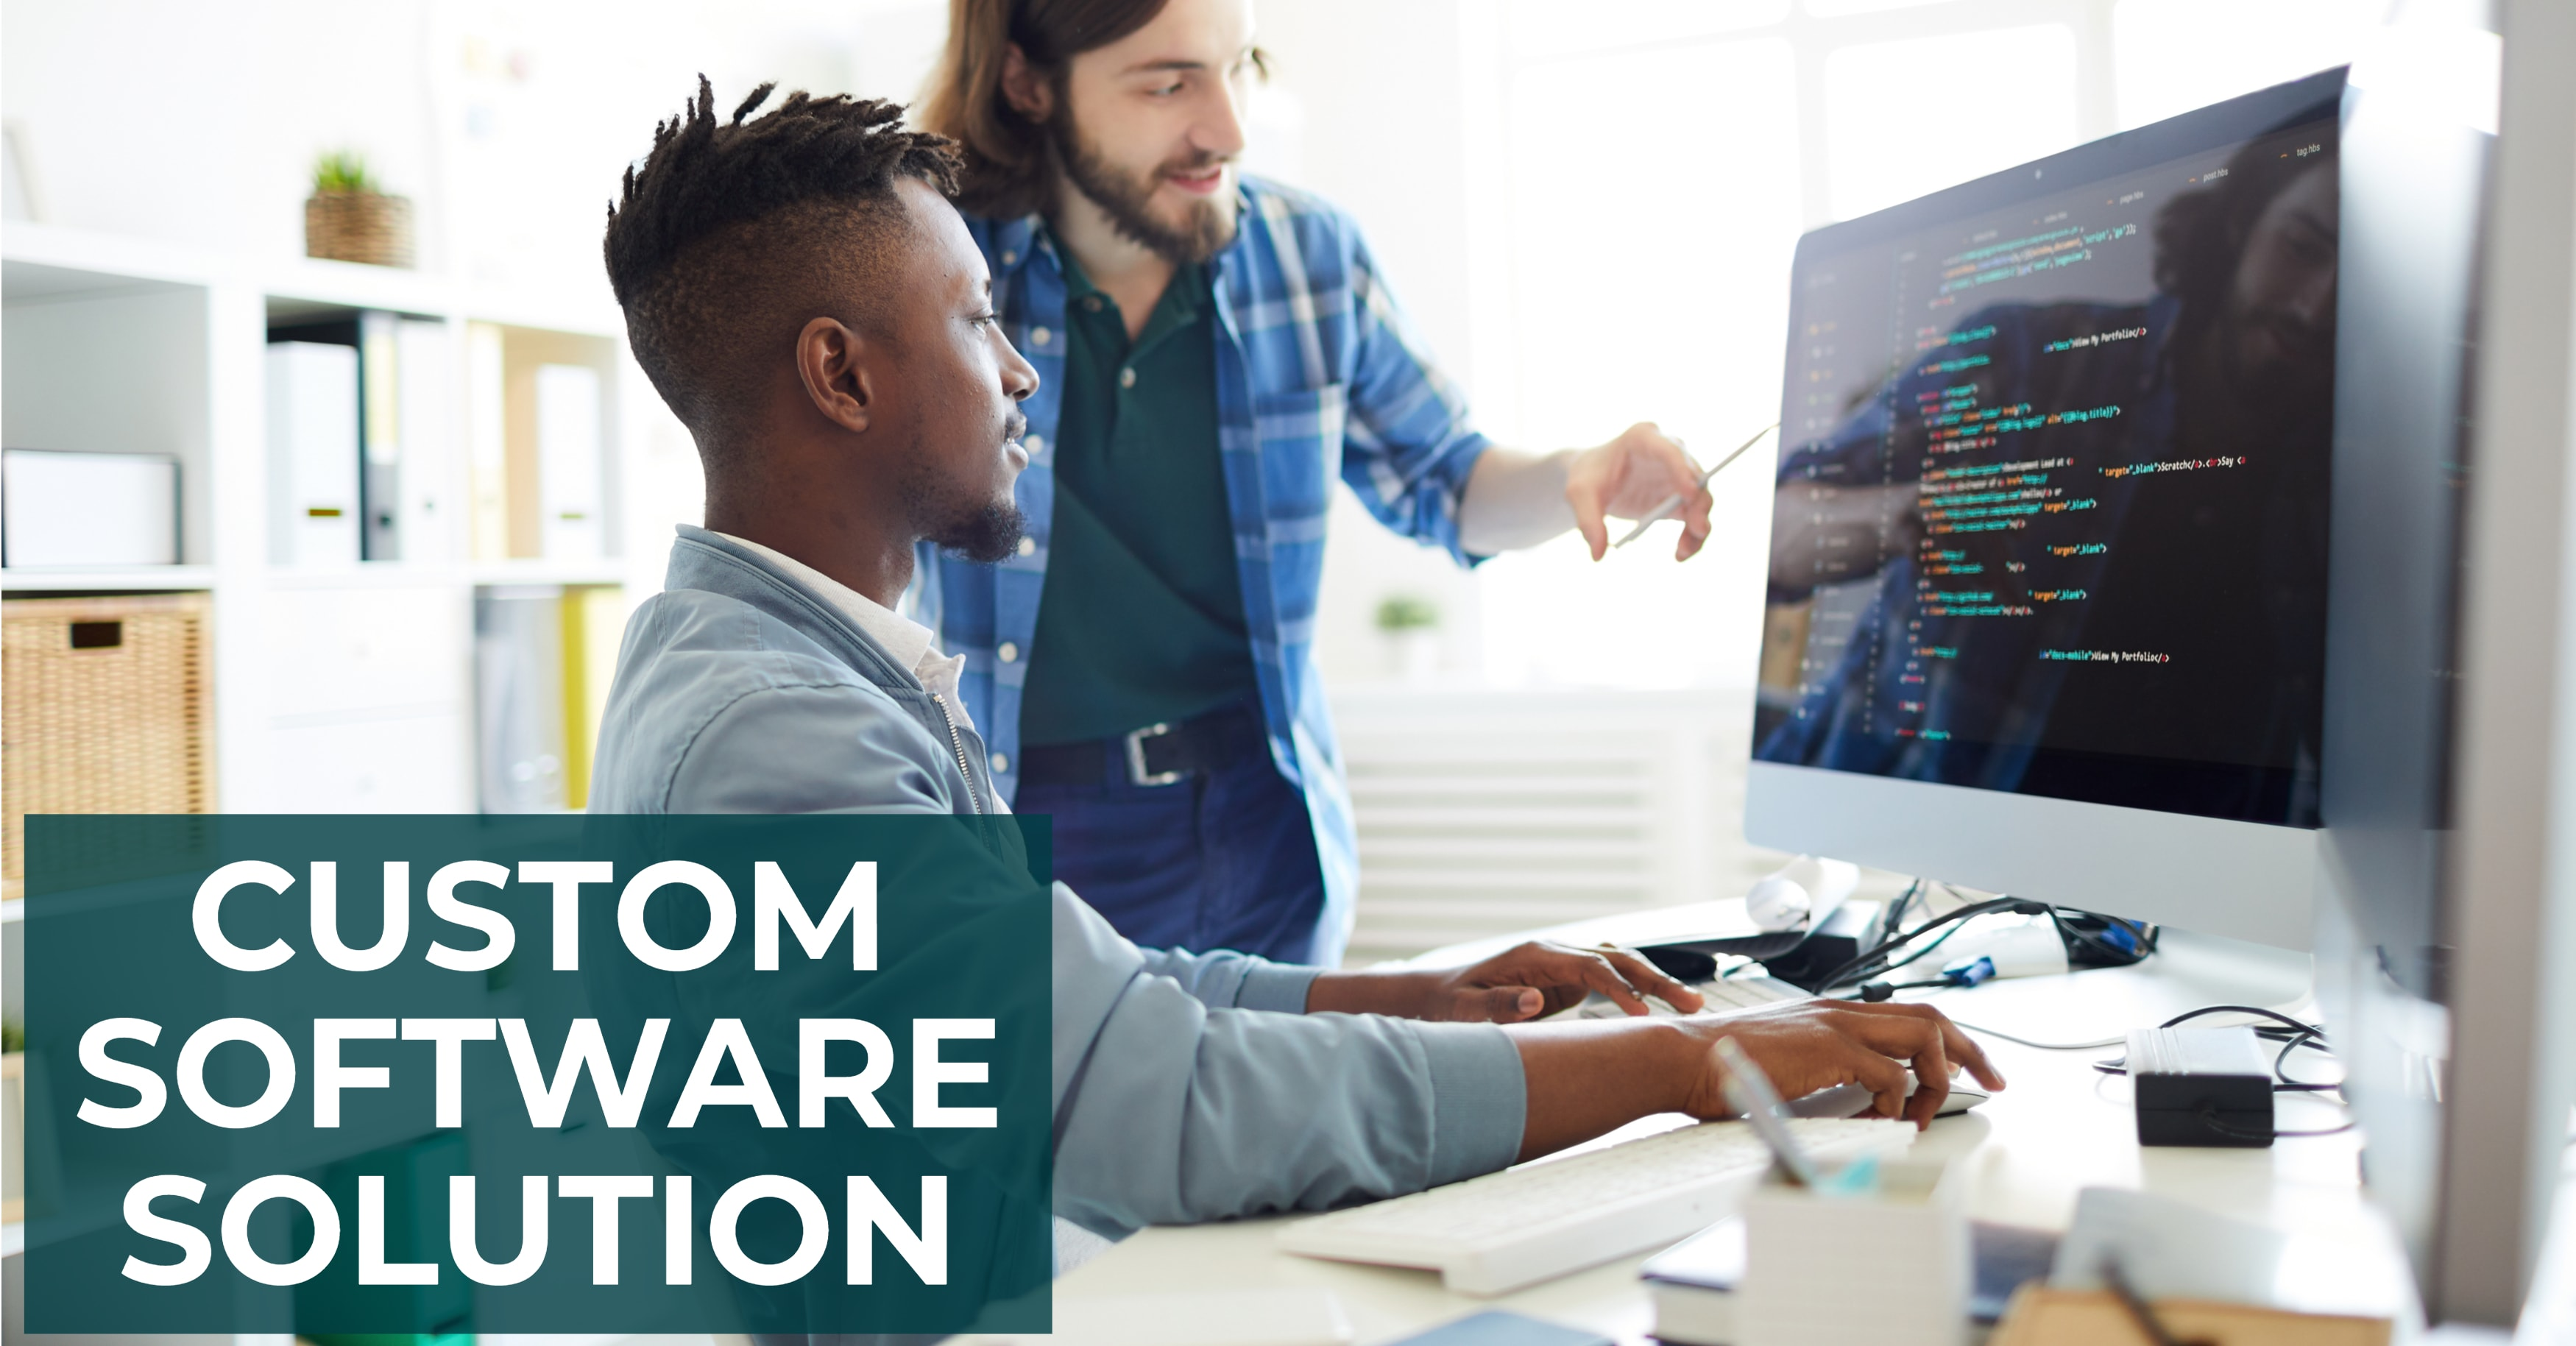 Does Your Business Need a Custom Software Solution?